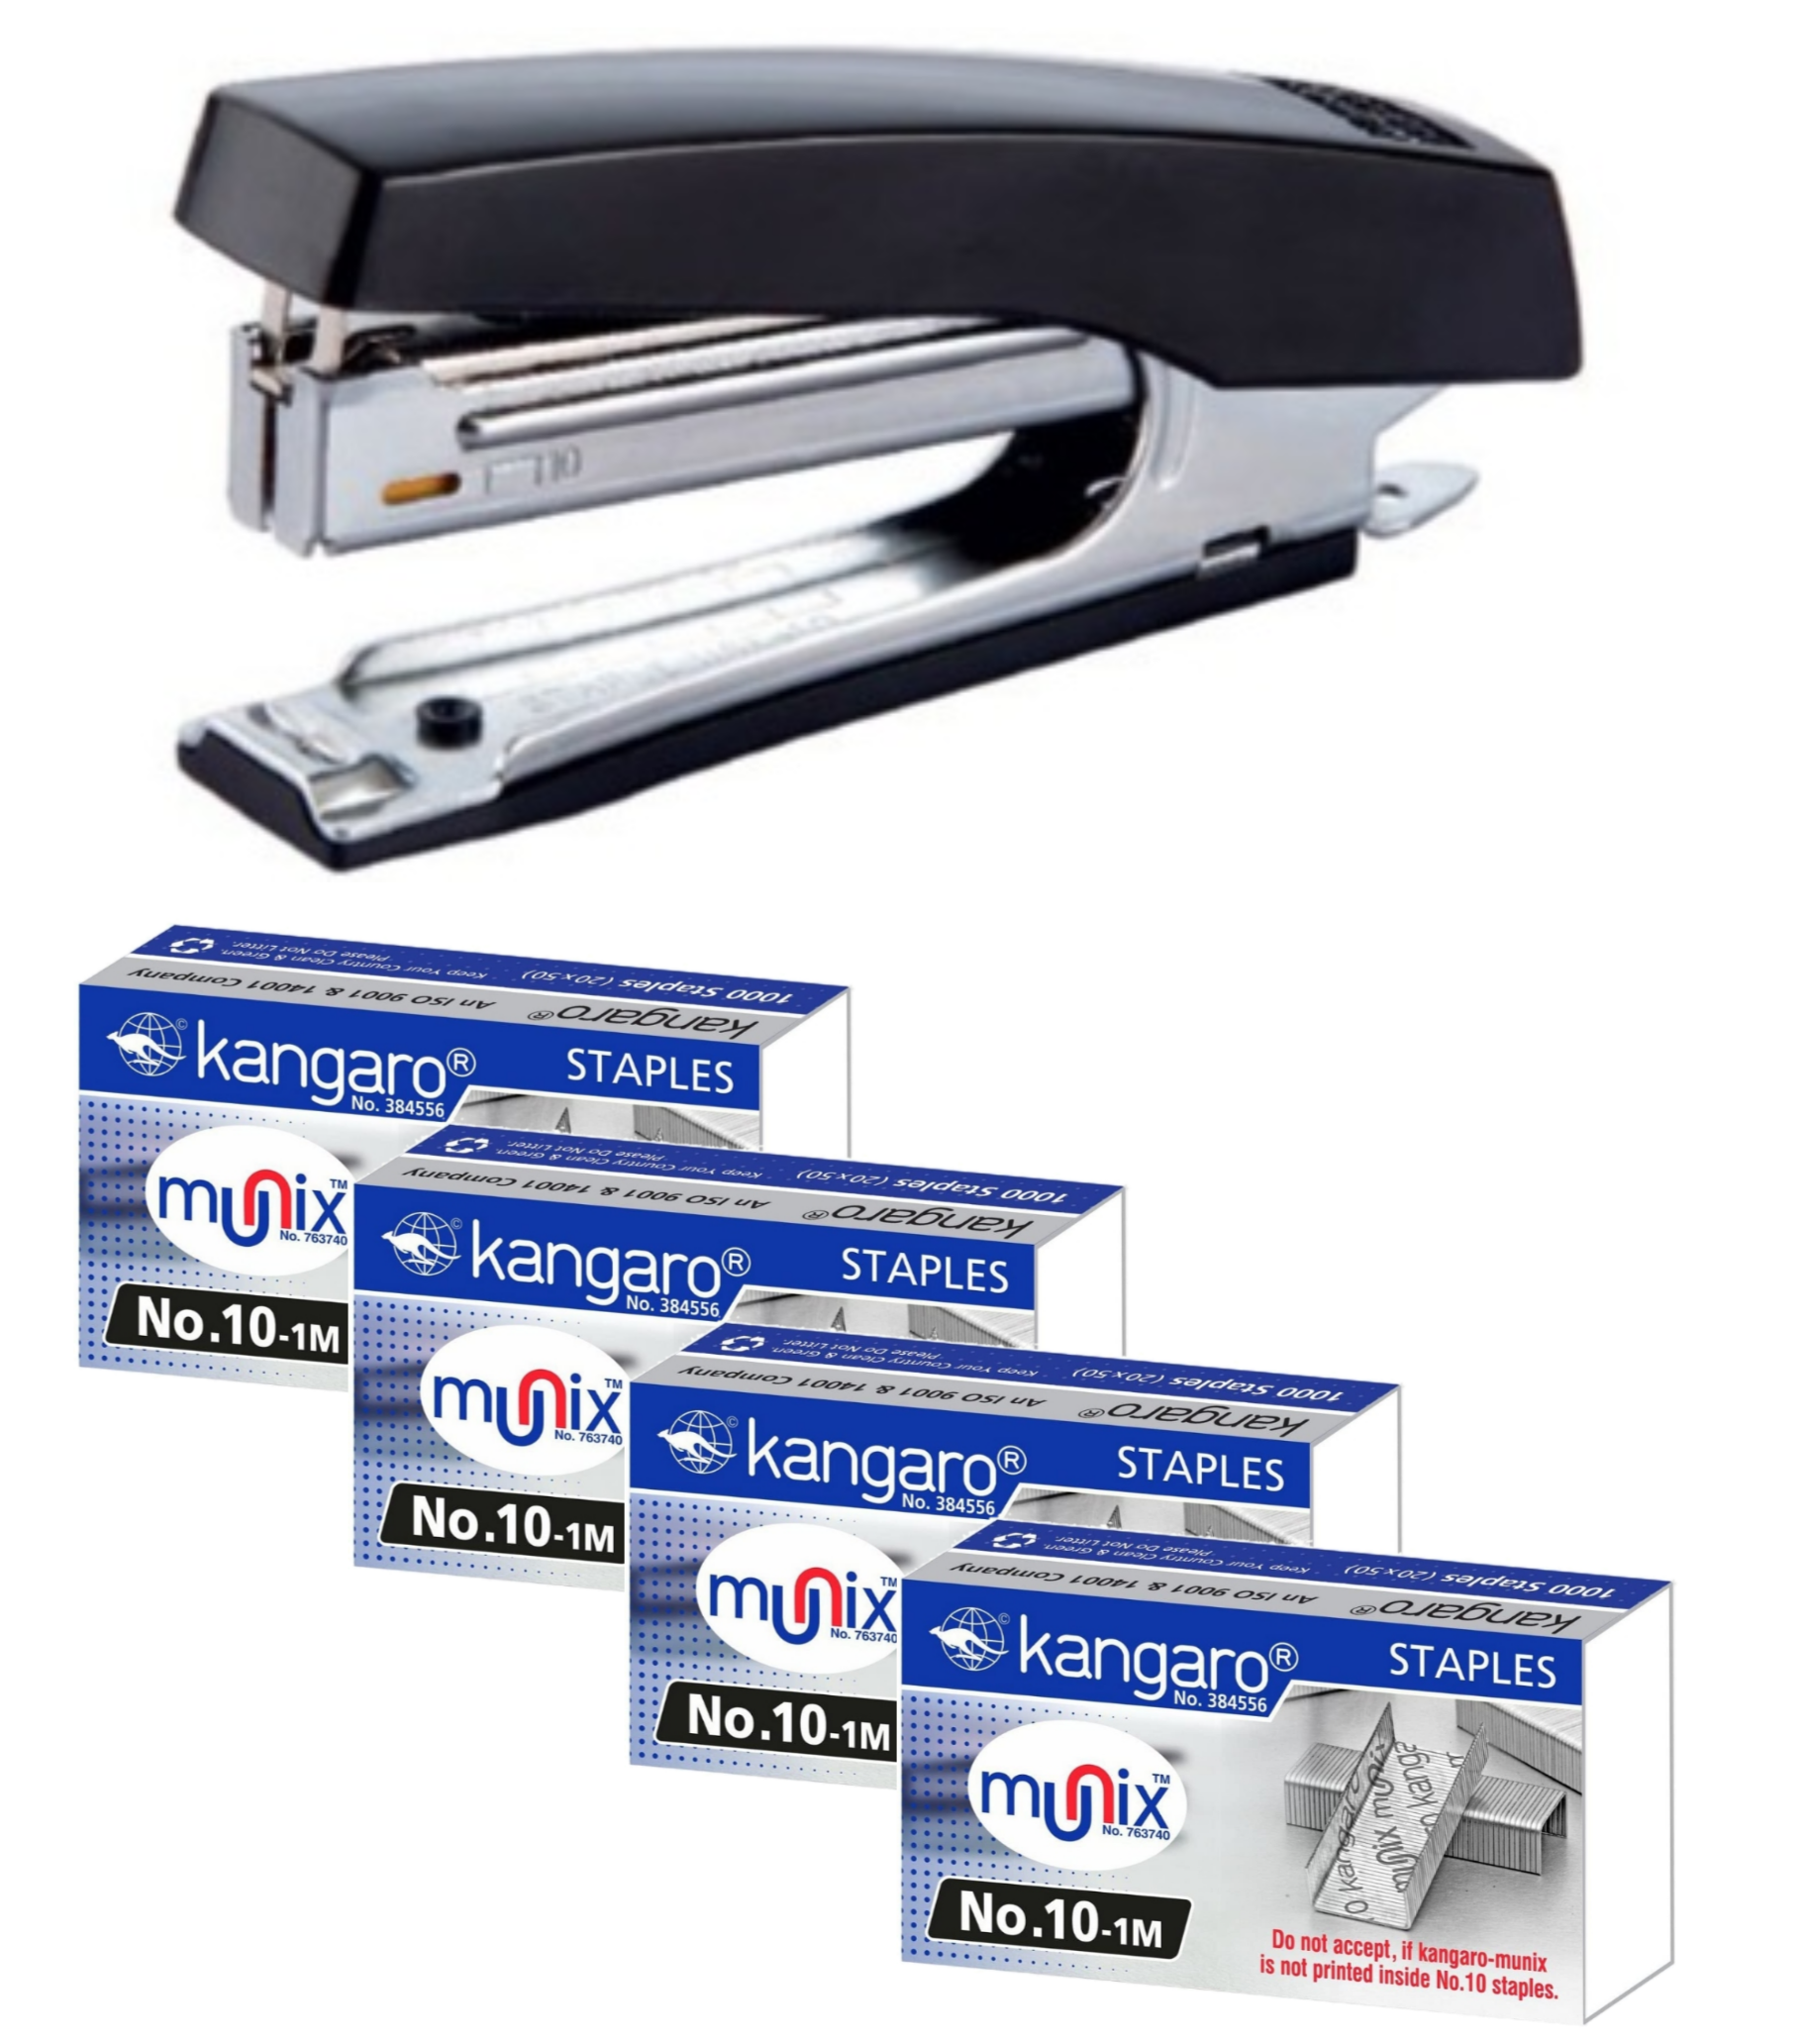 Kangaro HD-10D Stapler With 4 Packs of No. 10-1M Staple Pins Top Loading Combo Pack